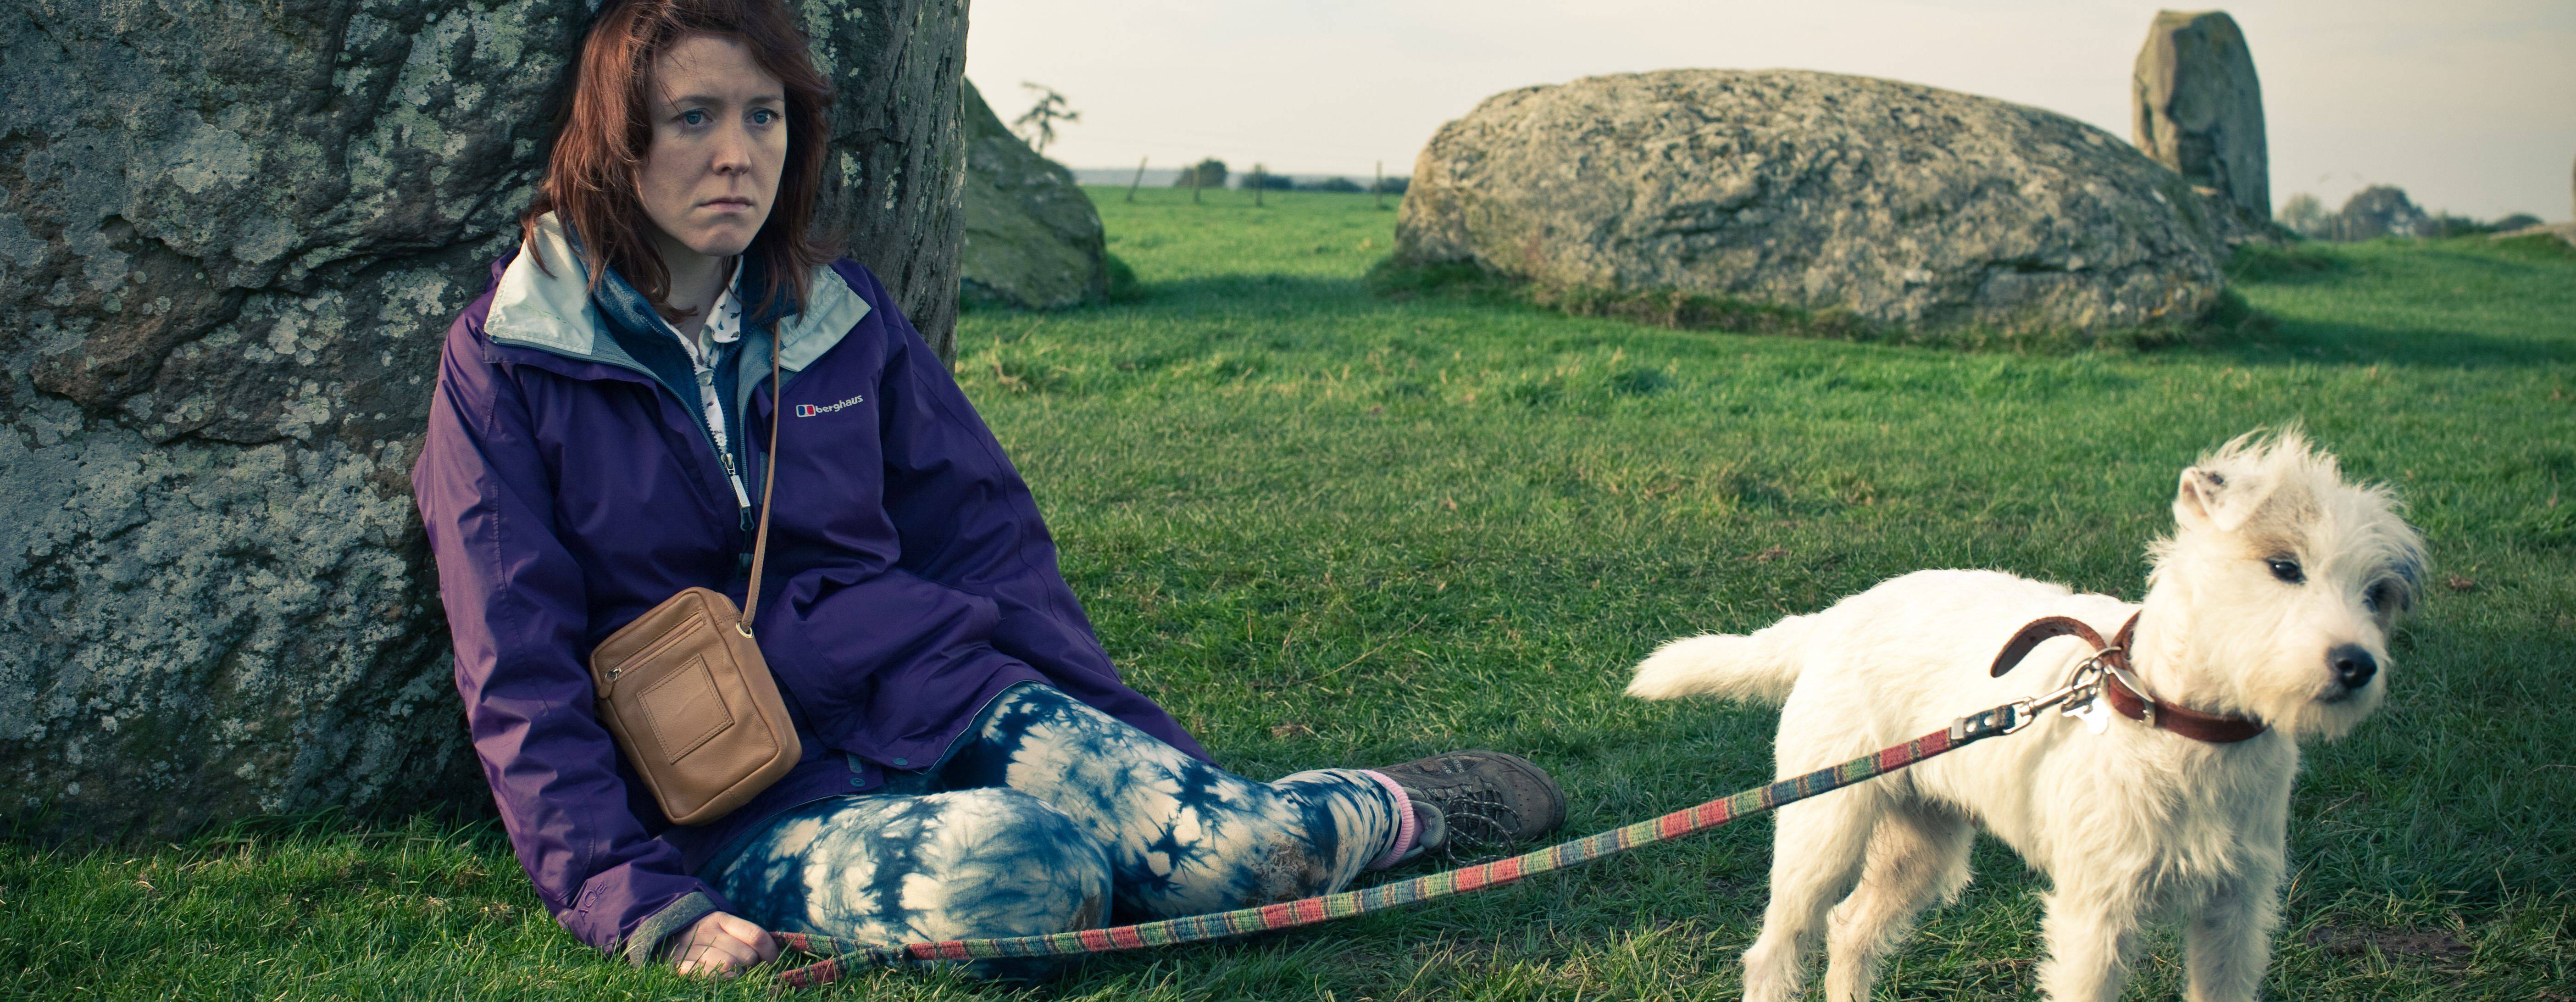 An image from Sightseers